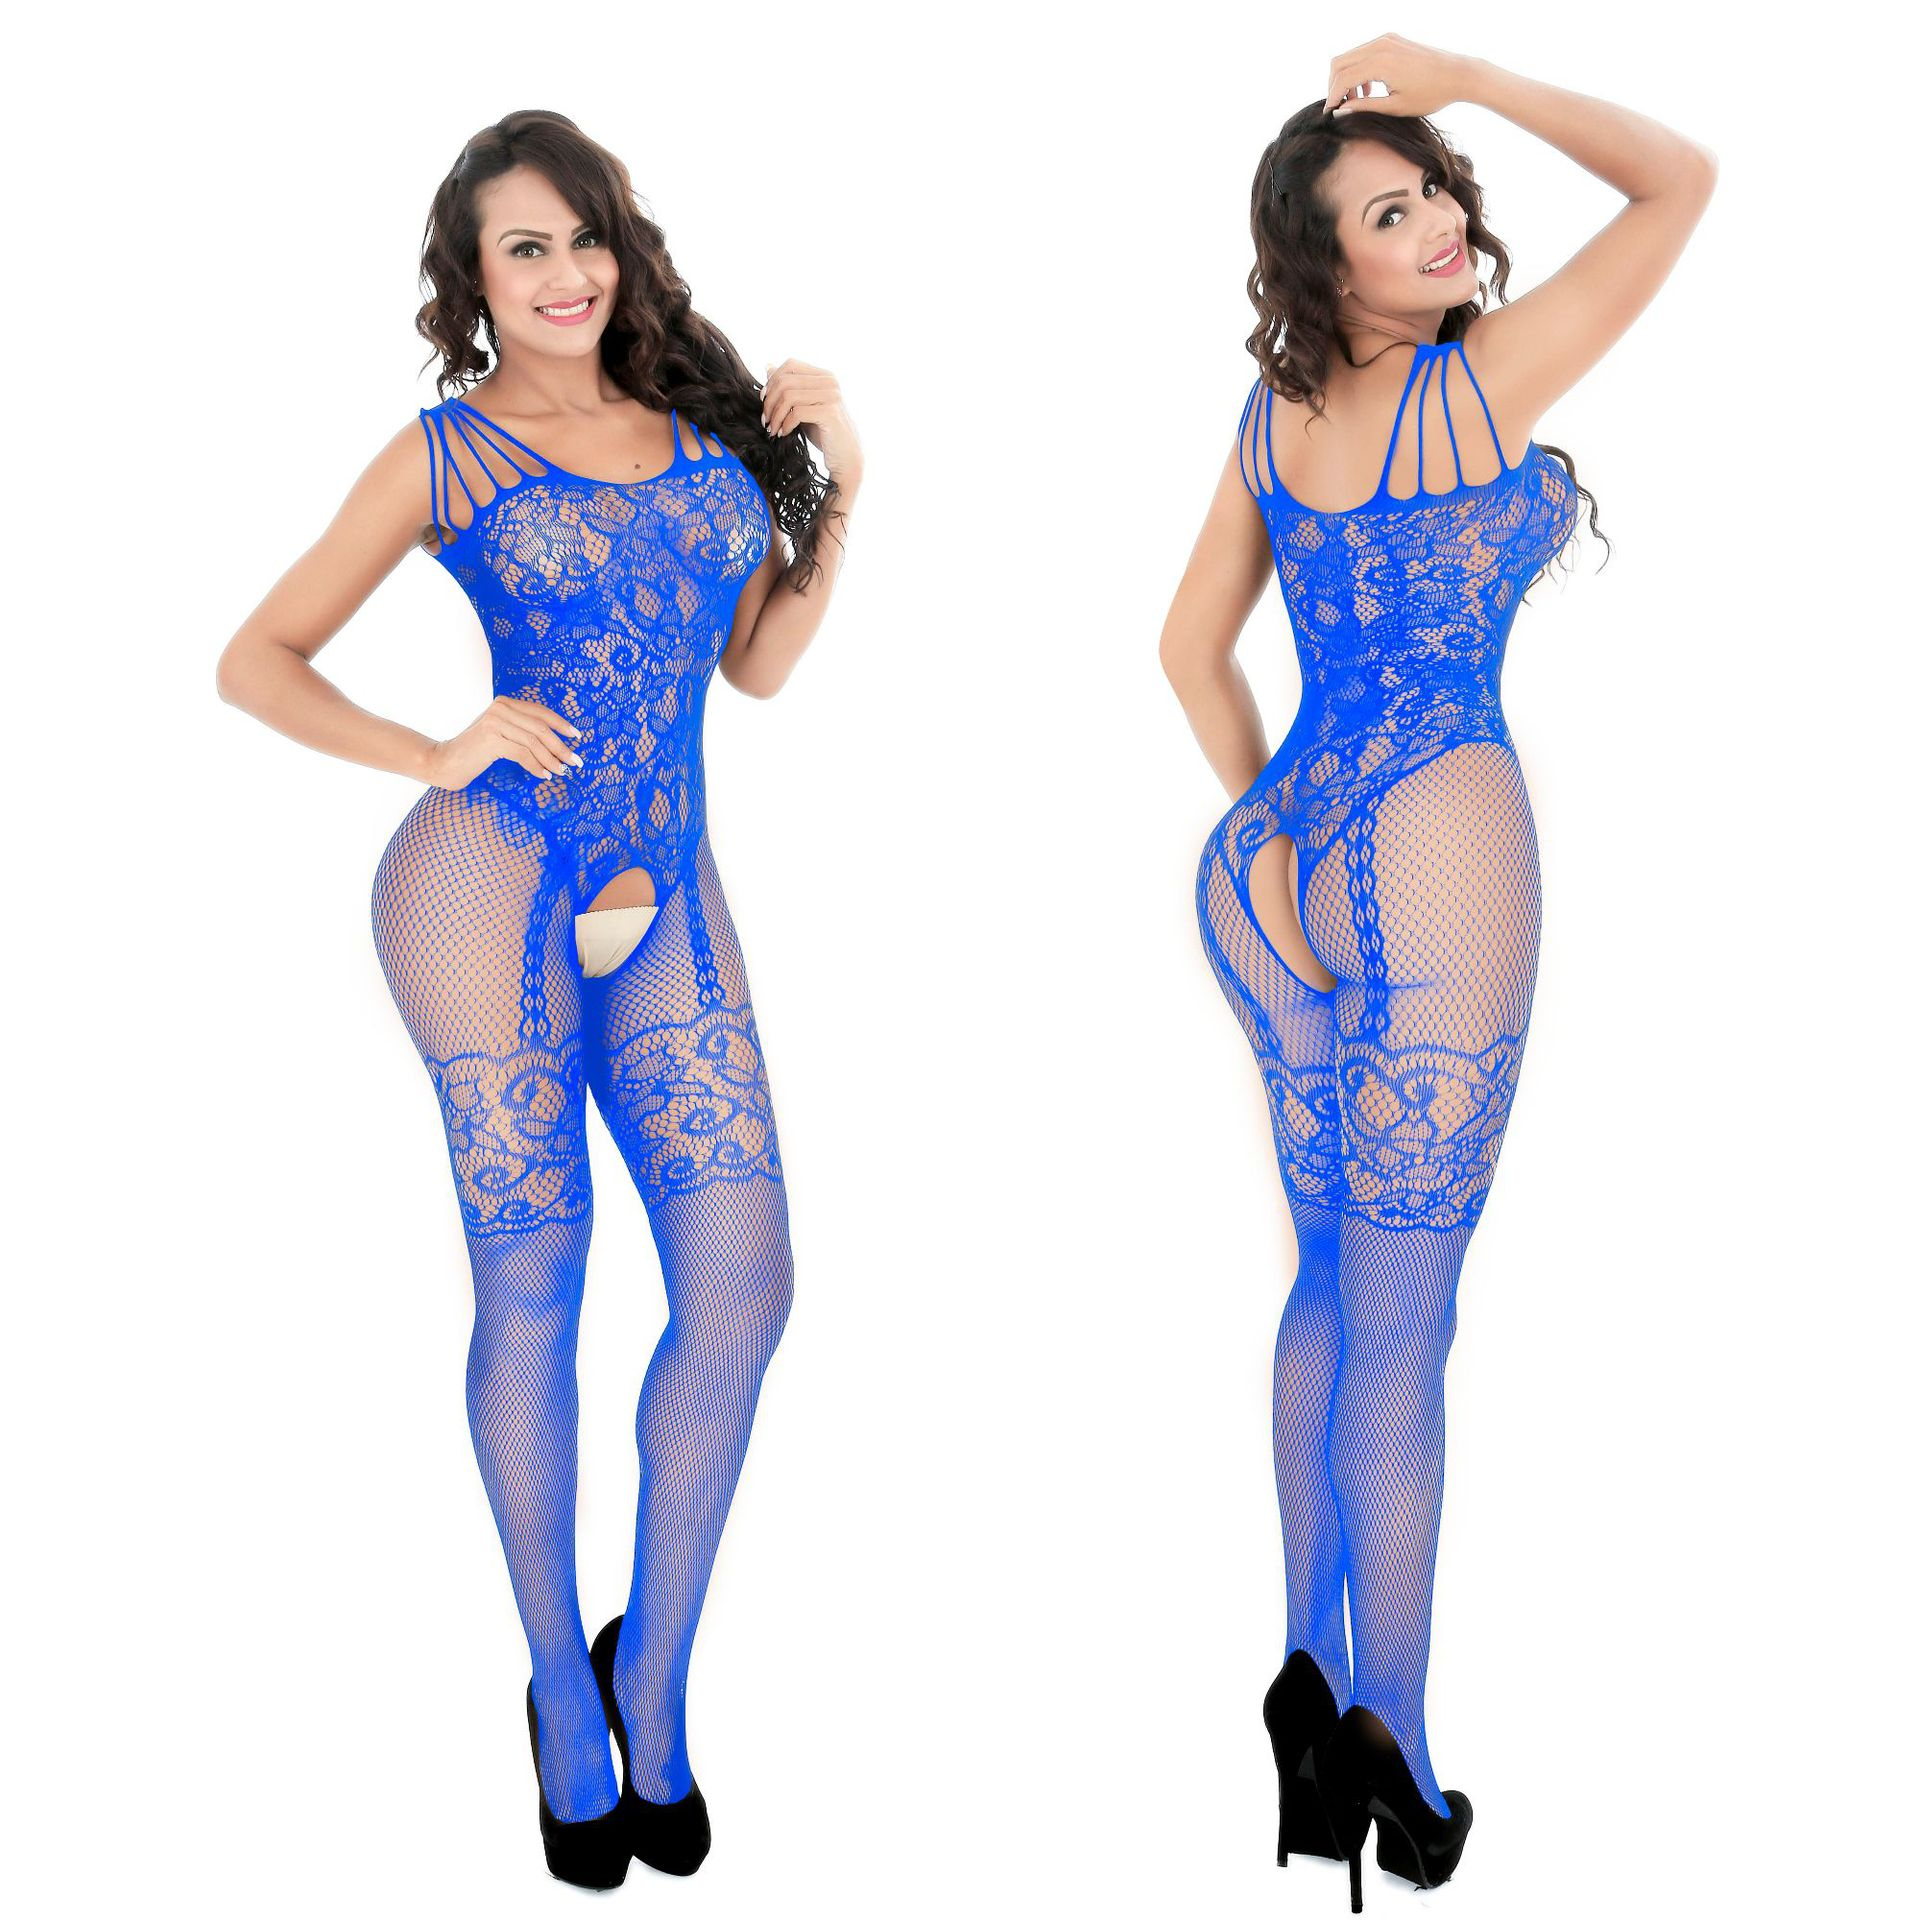 Sexy Openwork Uniform Temptation Pajamas Women 39 s Casual Lingerie Stockings For Hot Girls Nightclub Bar Party Show Cosplay in Teddies amp Bodysuits from Novelty amp Special Use